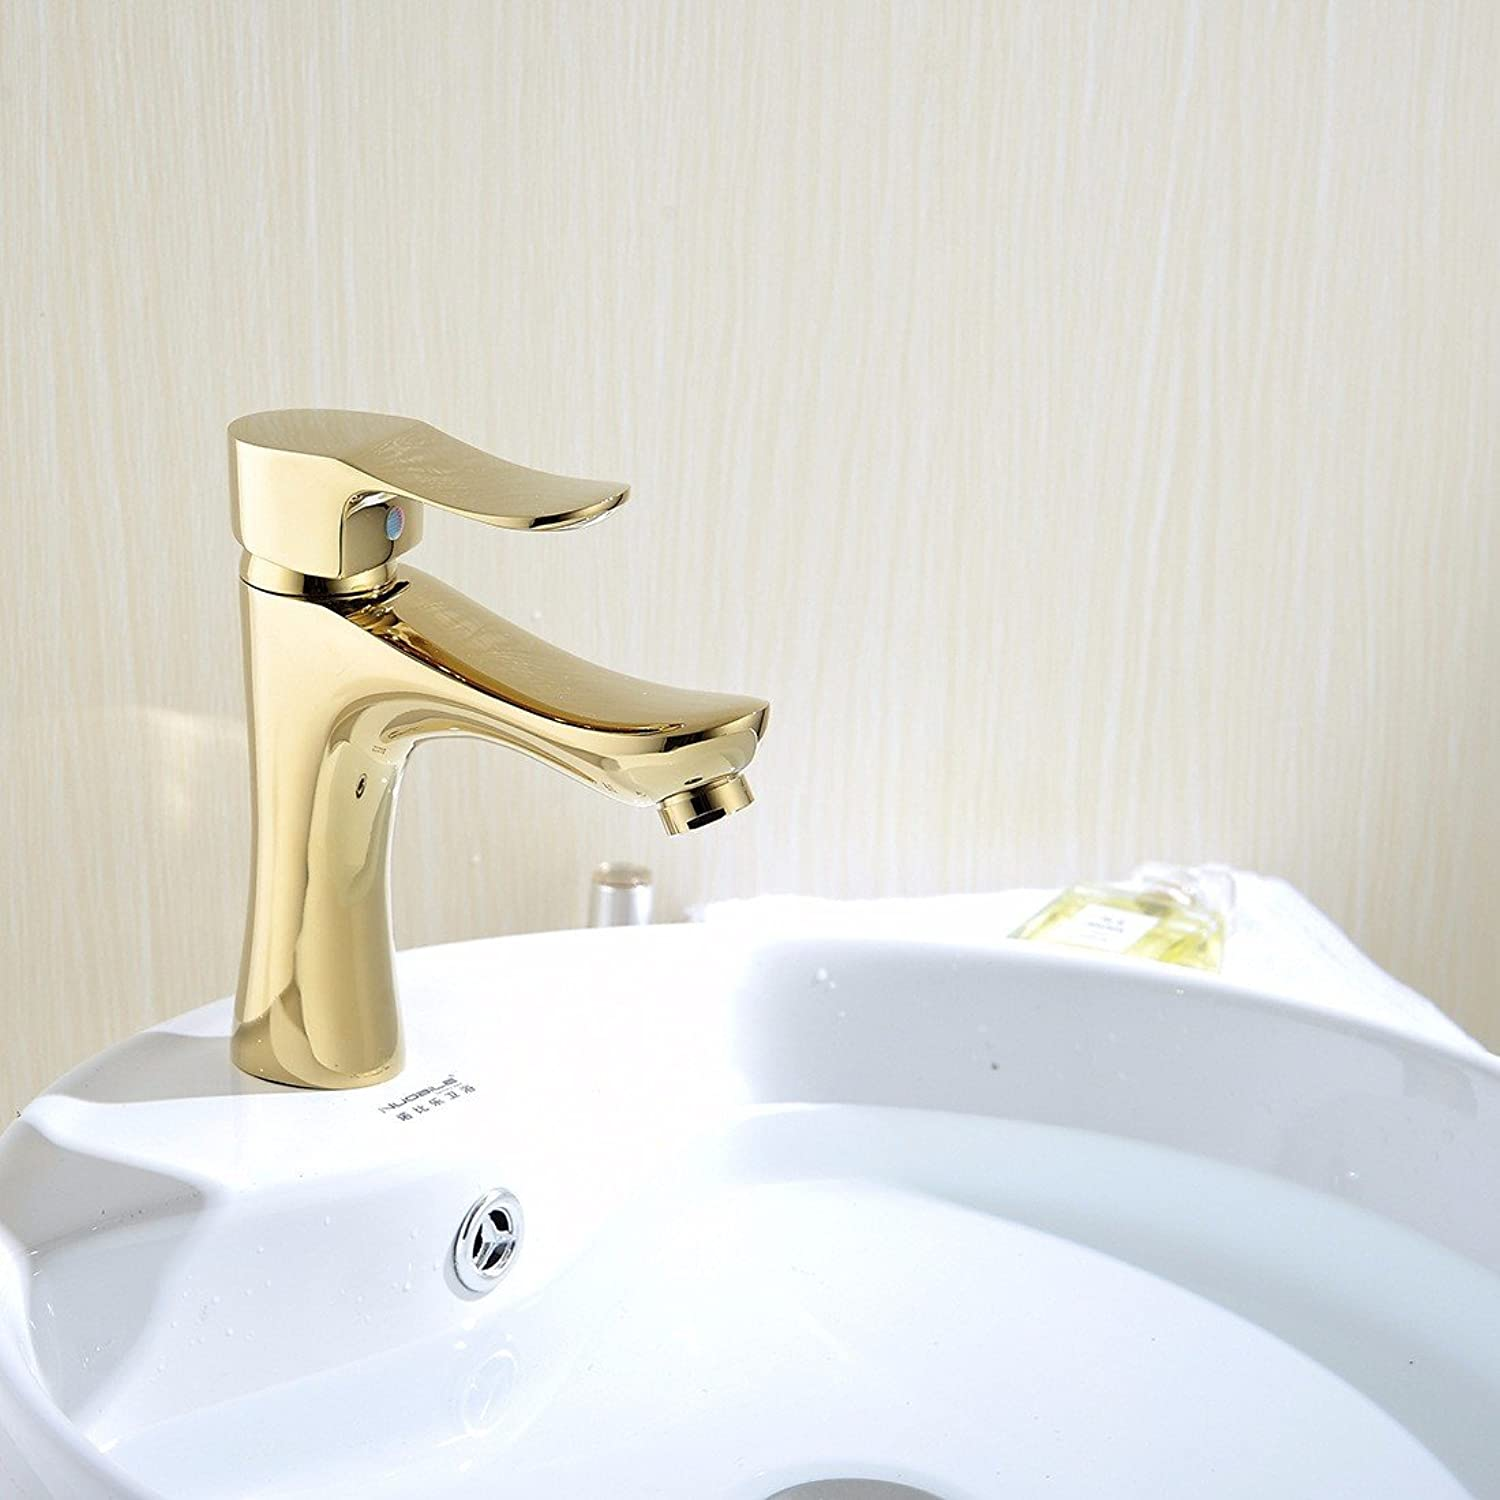 Bijjaladeva Antique Bathroom Sink Vessel Faucet Basin Mixer Tap The Brass chrome gold bathroom basin modern minimalist bathrooms, hot and cold water bath Faucet